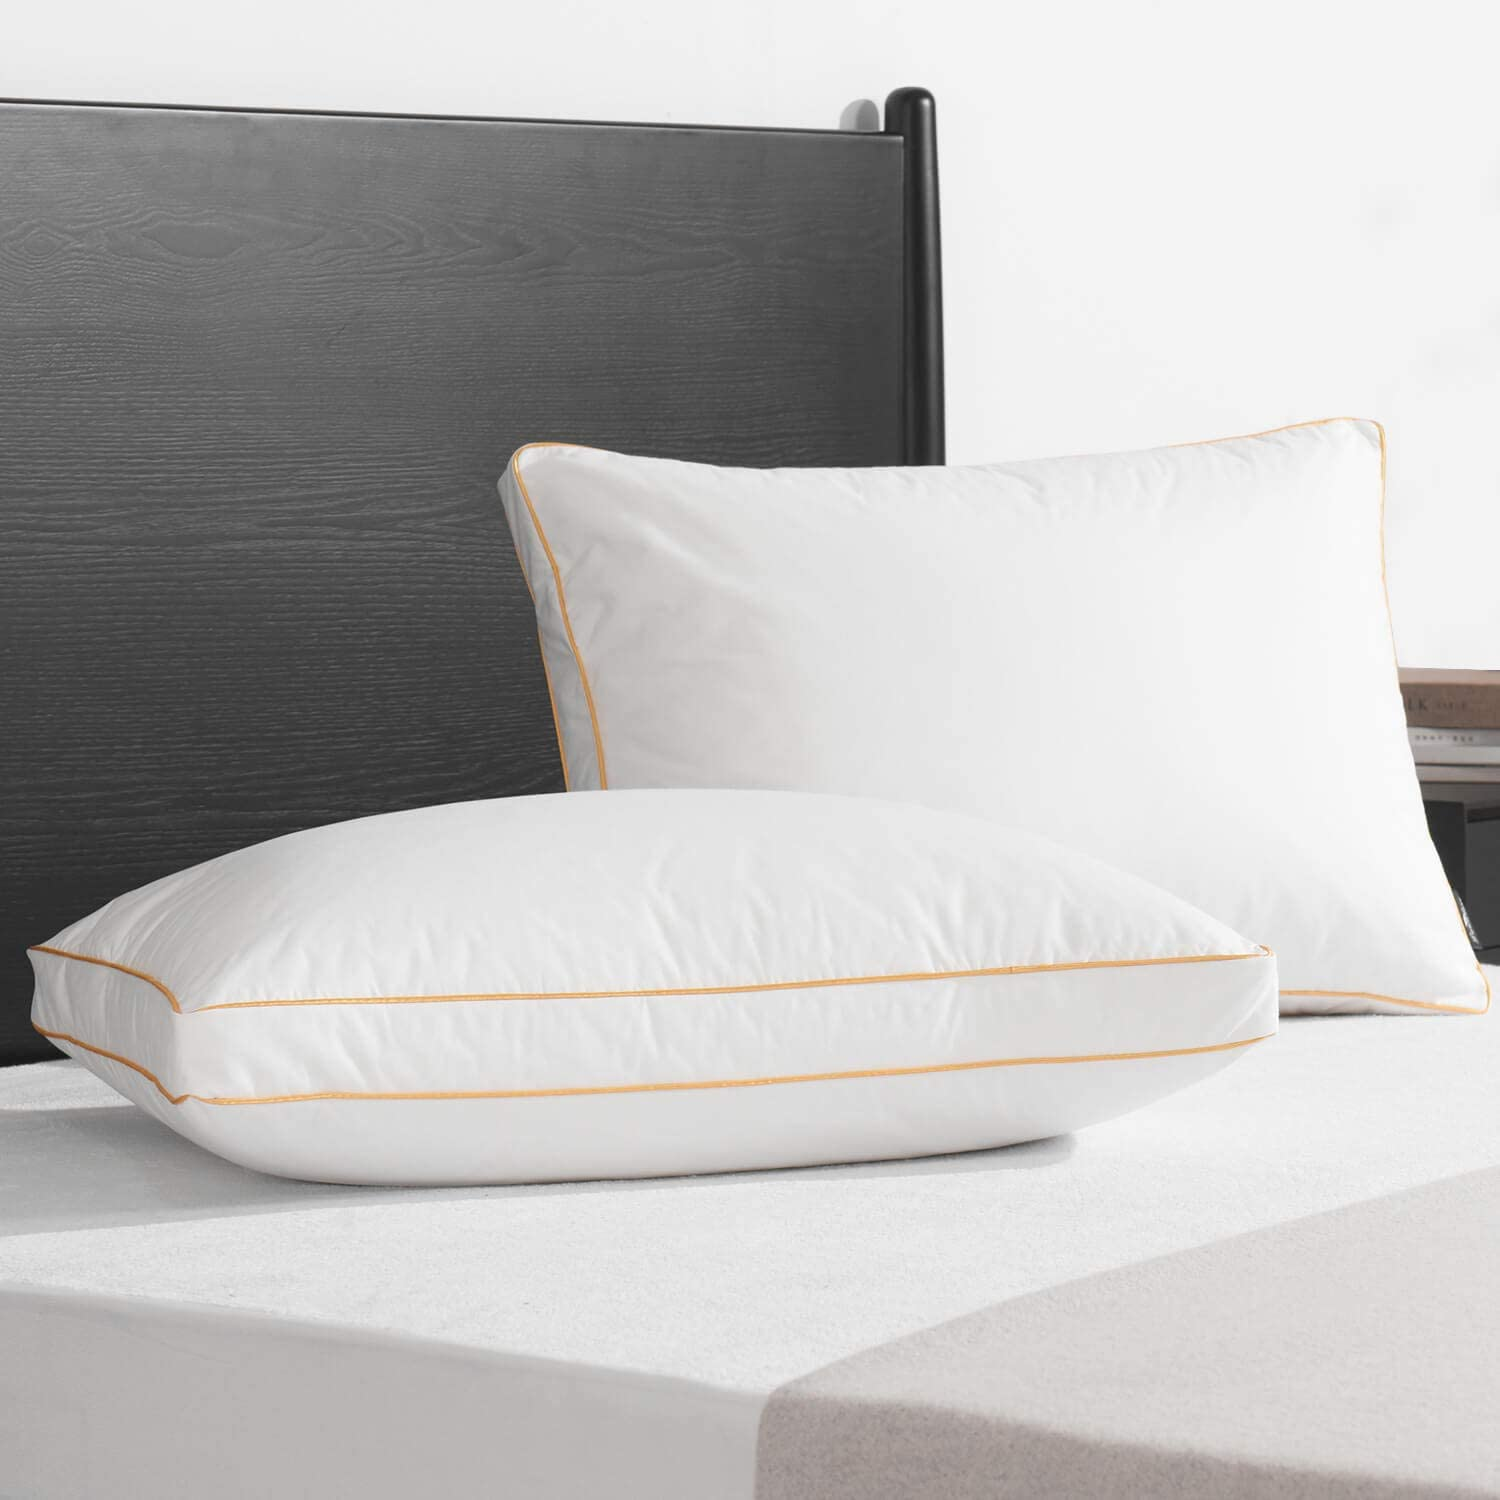 downluxe Premium Down Feather Pillows - 2 Pack Gusseted Bed Pillows for Sleeping with Soft 100% Downproof Cotton Shell, Queen Size